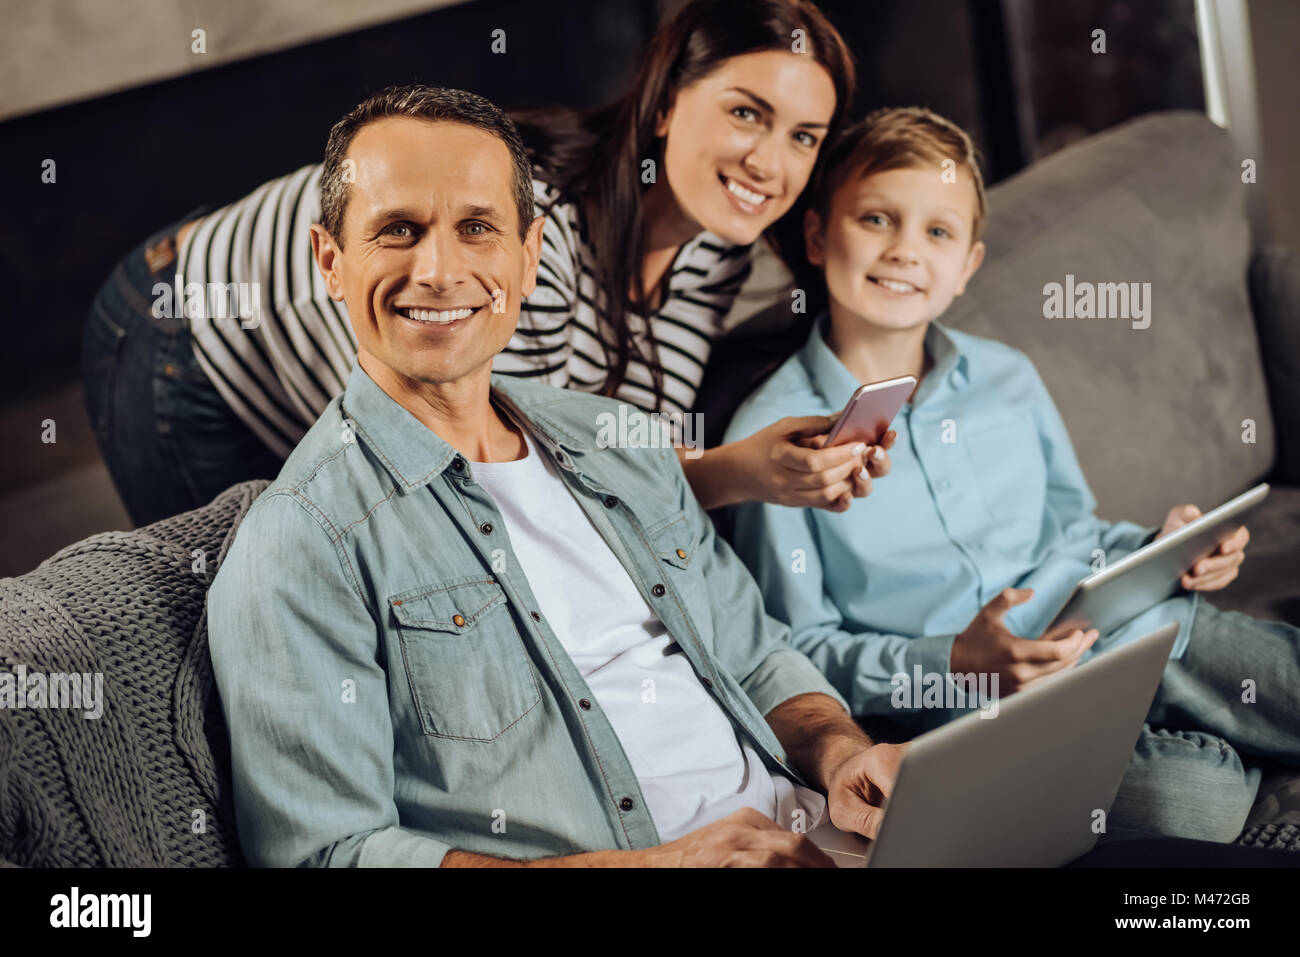 Cheerful family posing while using their gadgets - Stock Image